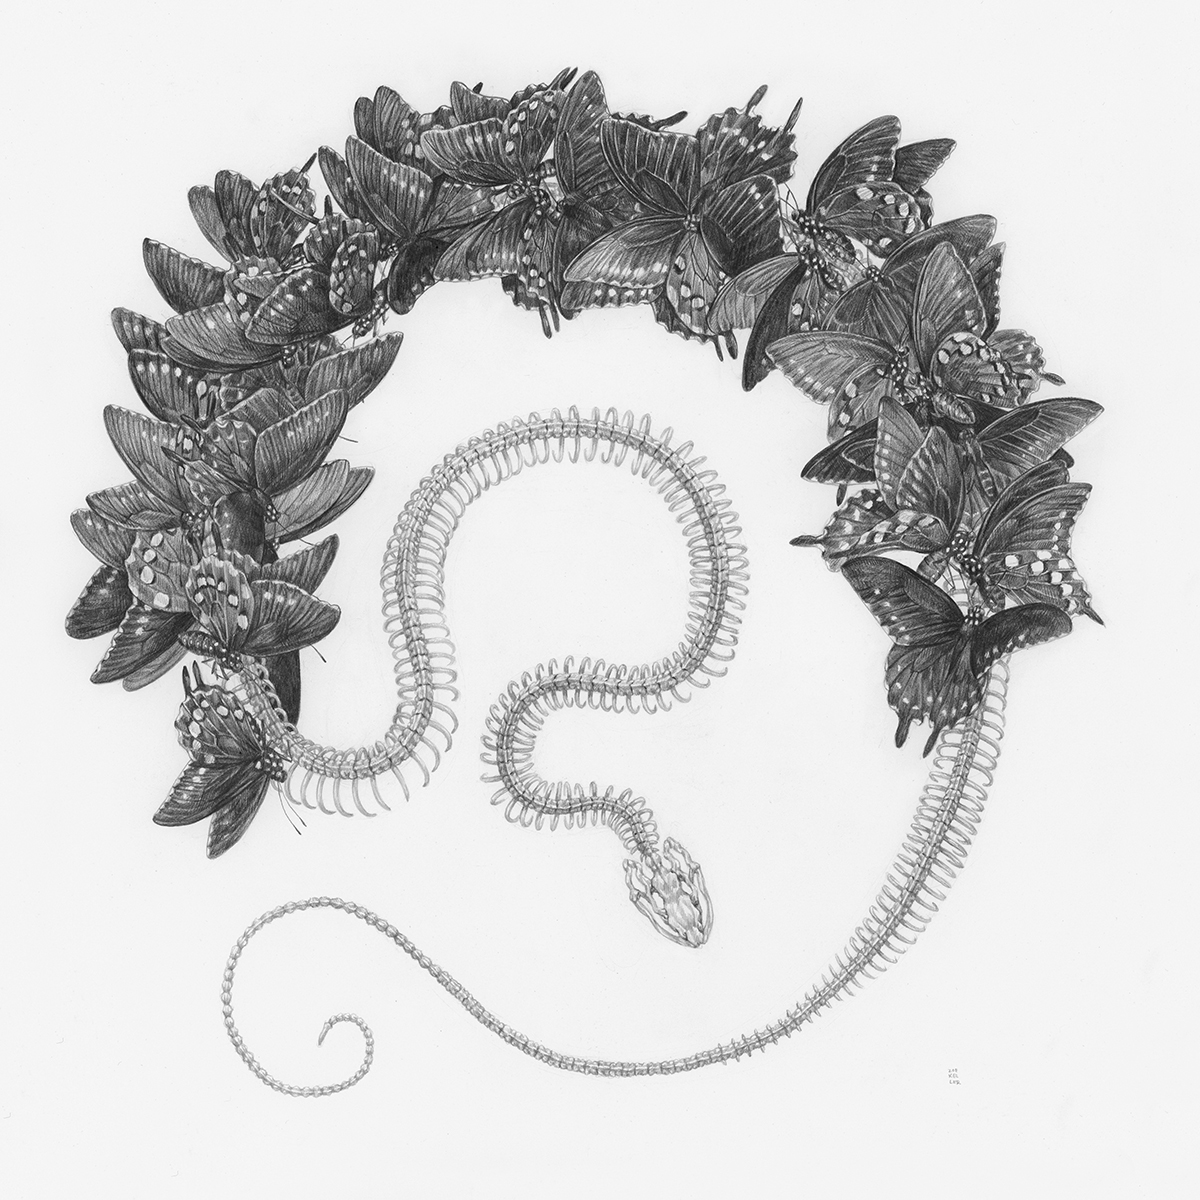 Sinuous Snakes, Insects, and Florals Intertwine in Graphite Illustrations by Zoe Keller